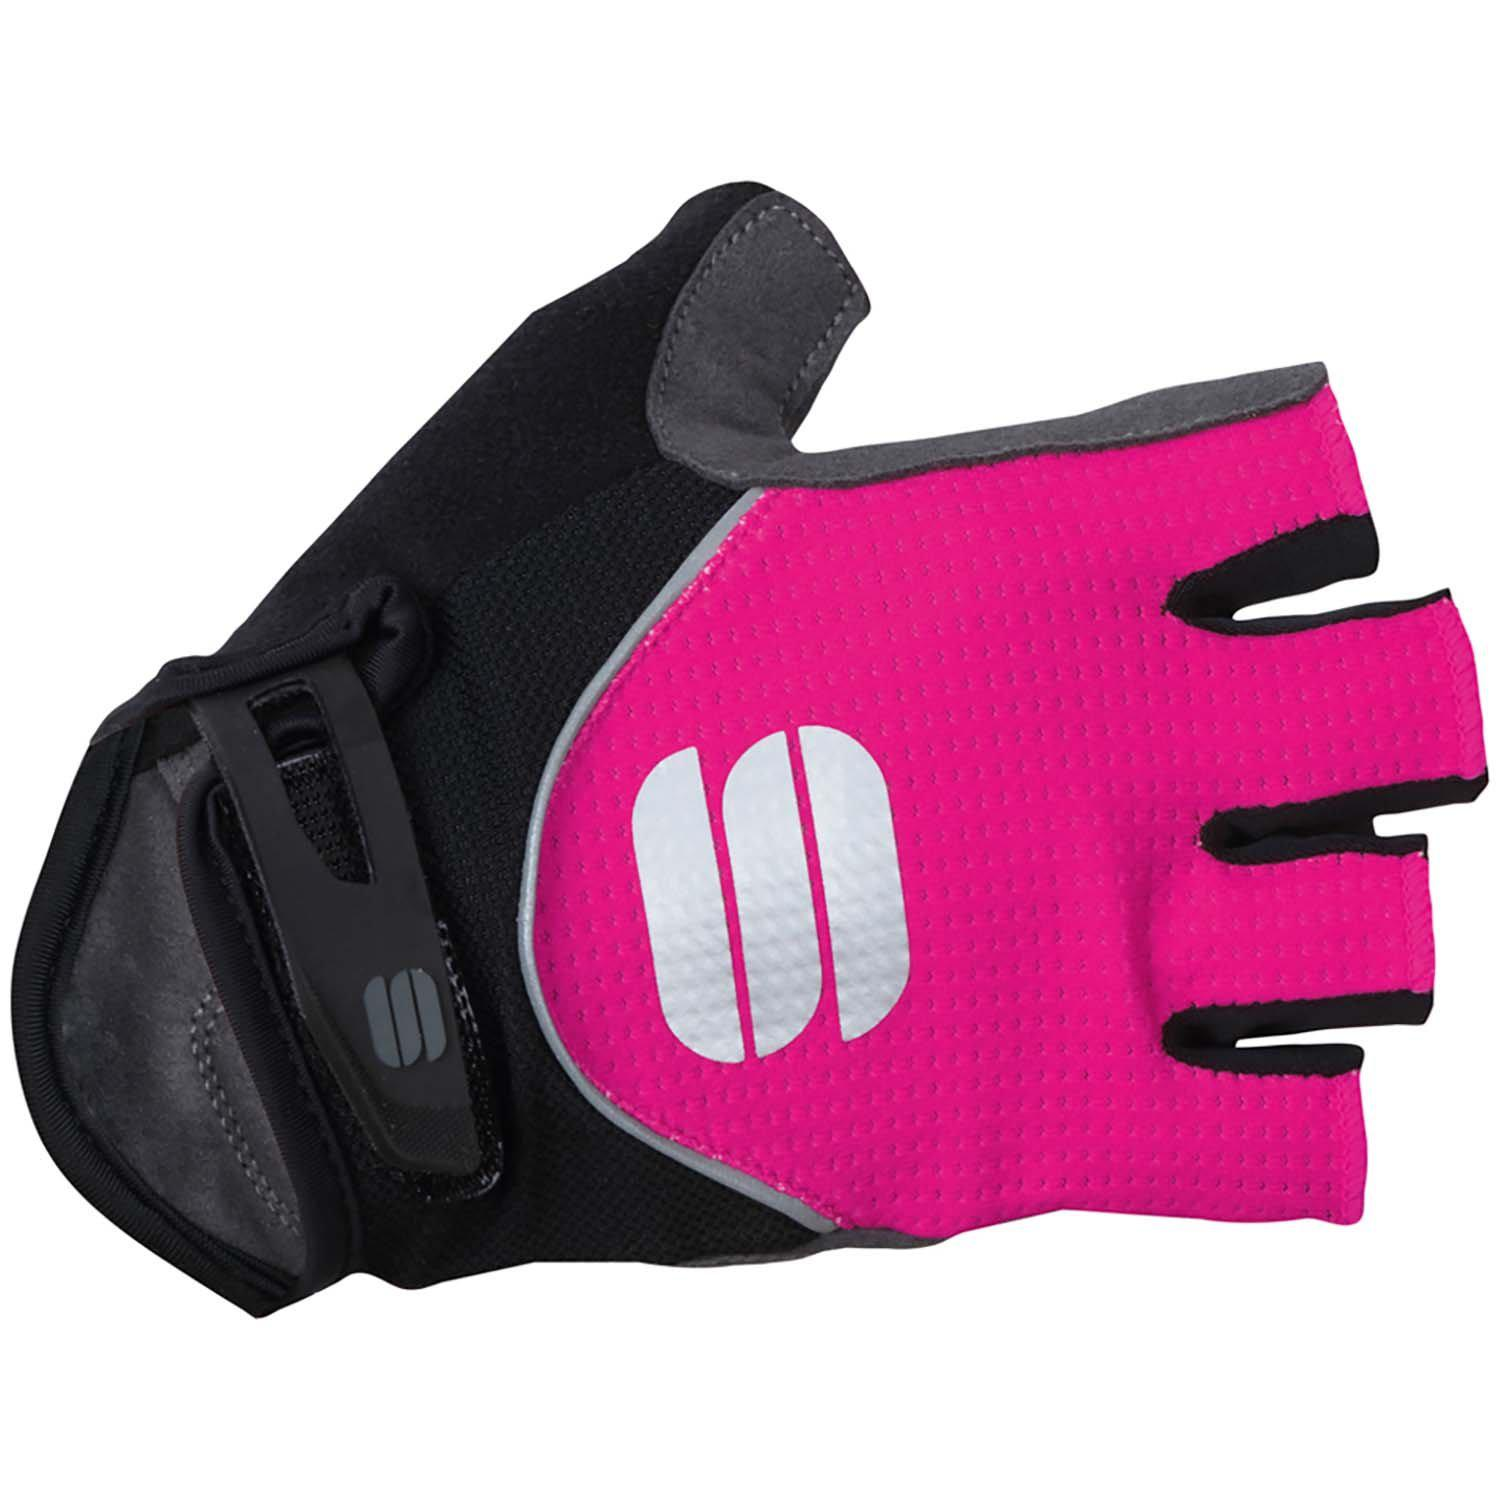 Sportful-Sportful Neo Women's Gloves-Bubble Gum-XS-SF020645871-saddleback-elite-performance-cycling